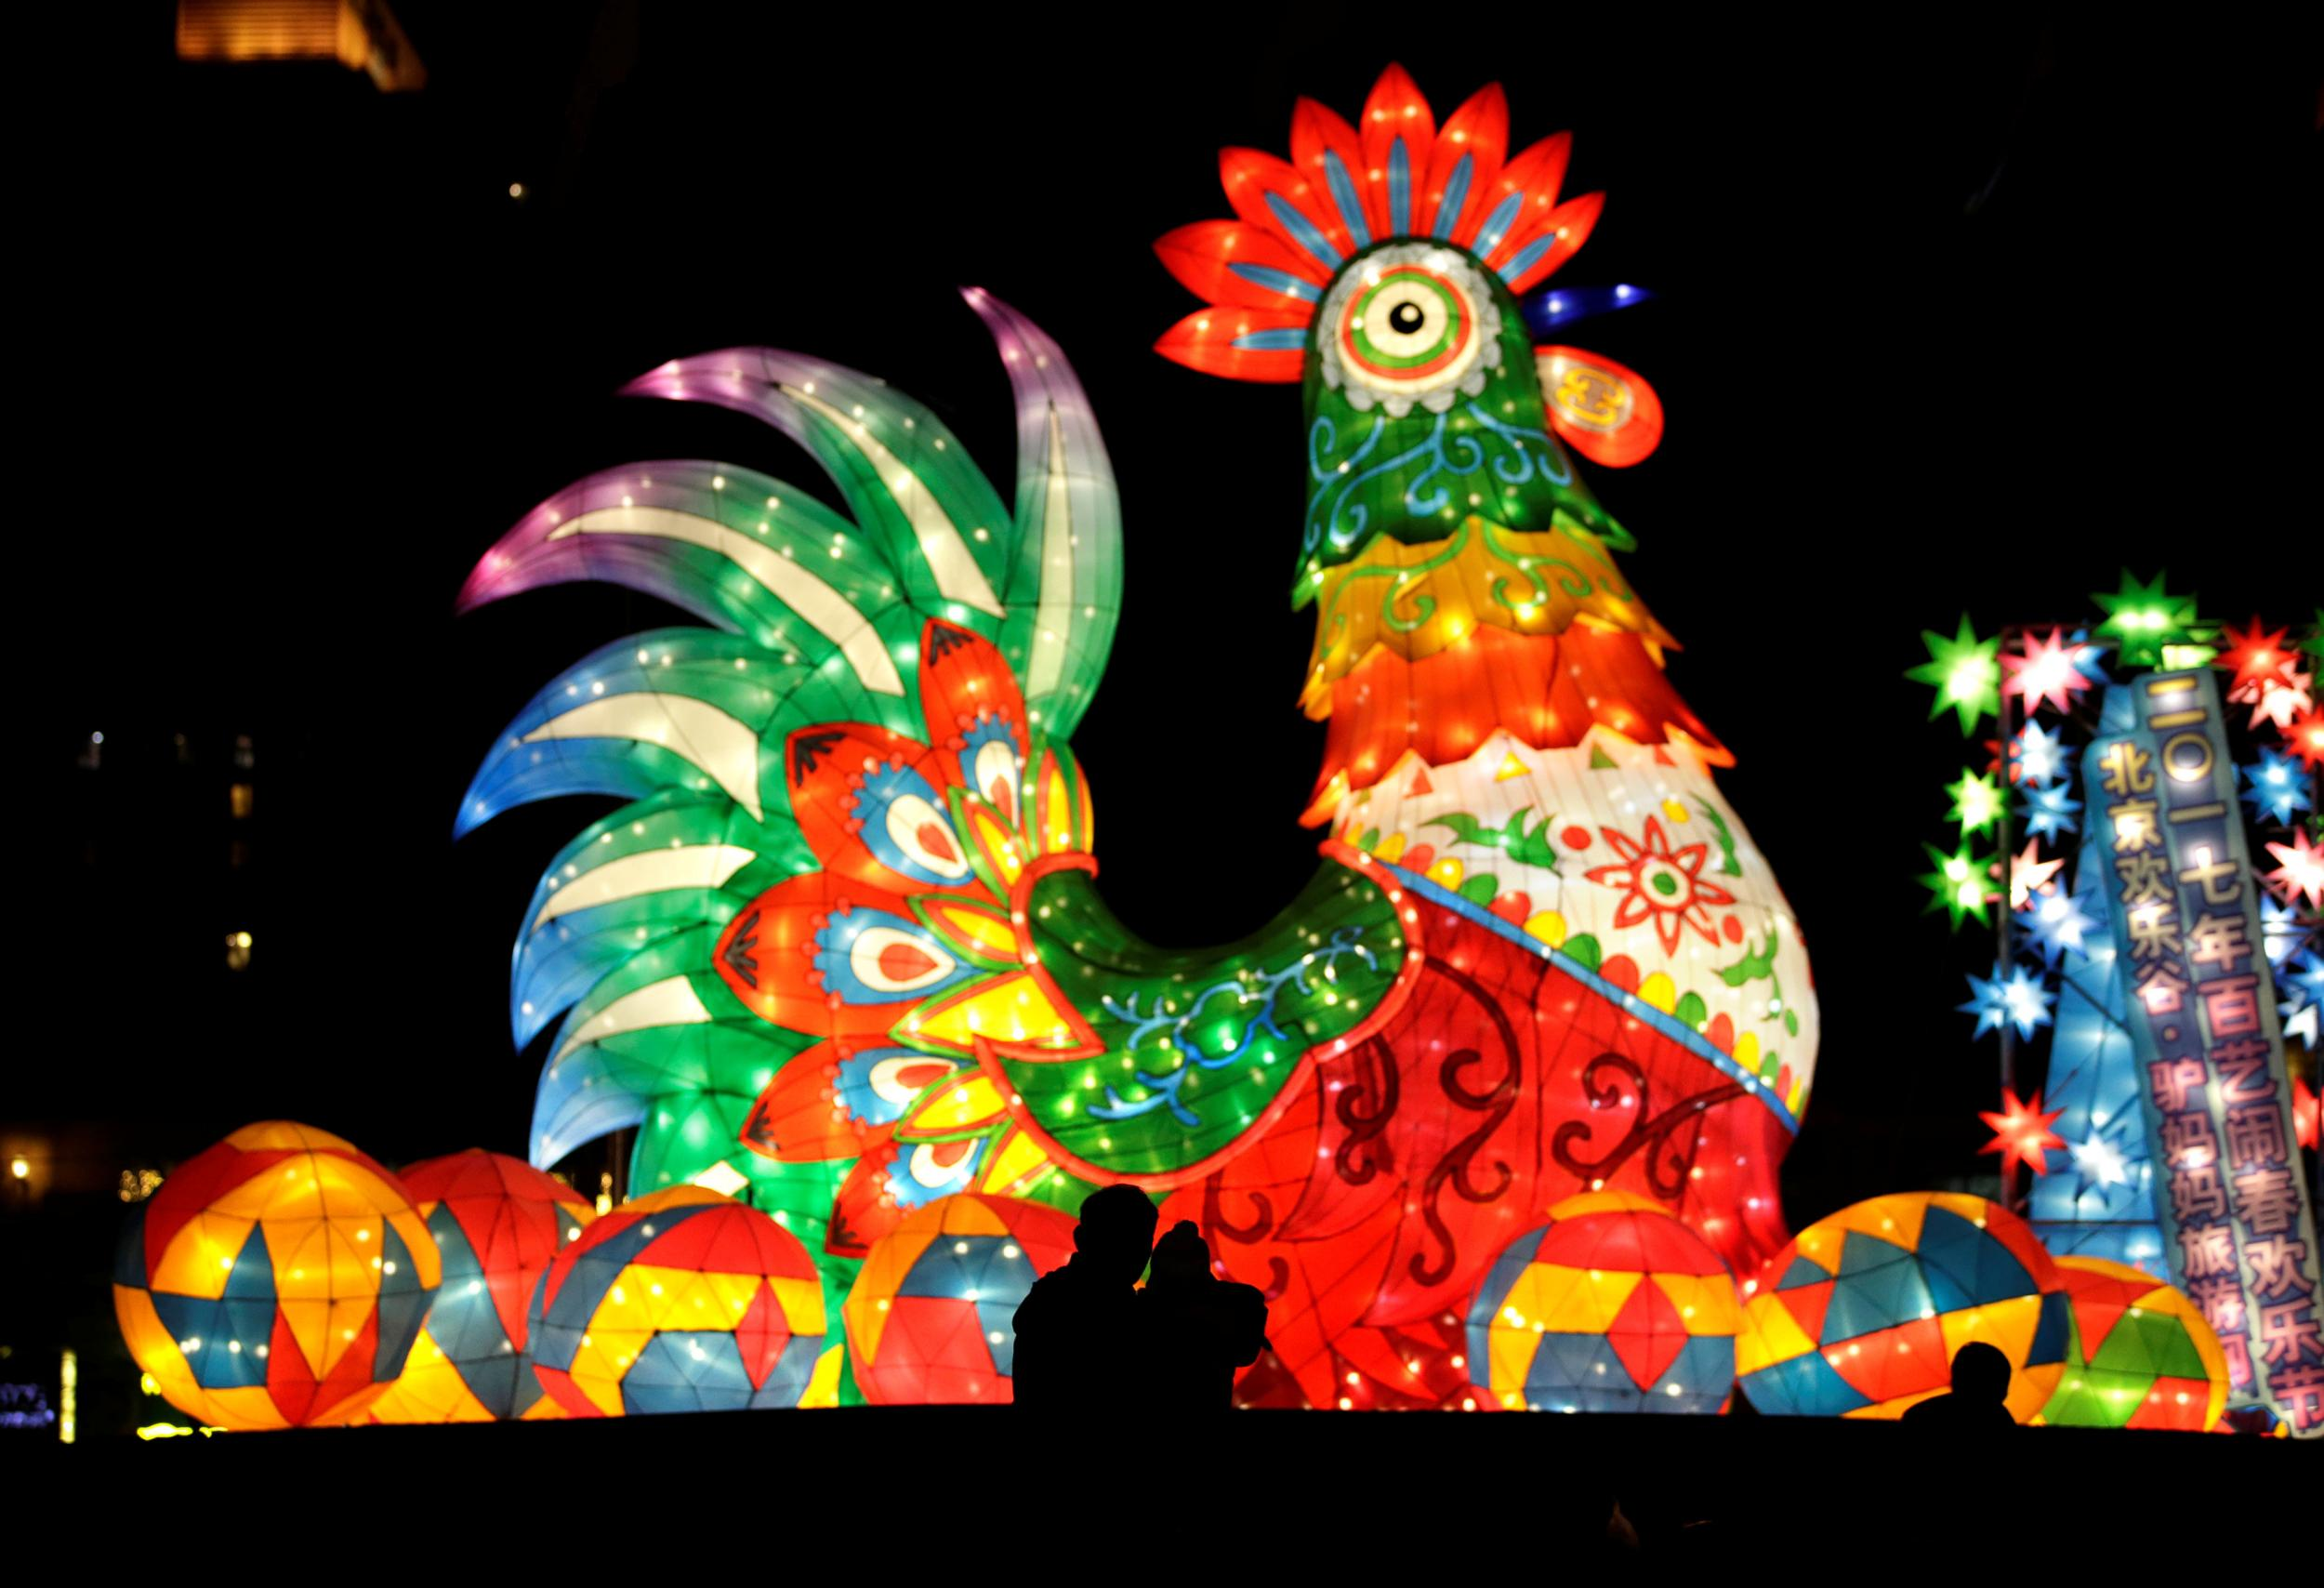 about chinese festival Your guide to chinese lantern festival 2018 in lauderhill.